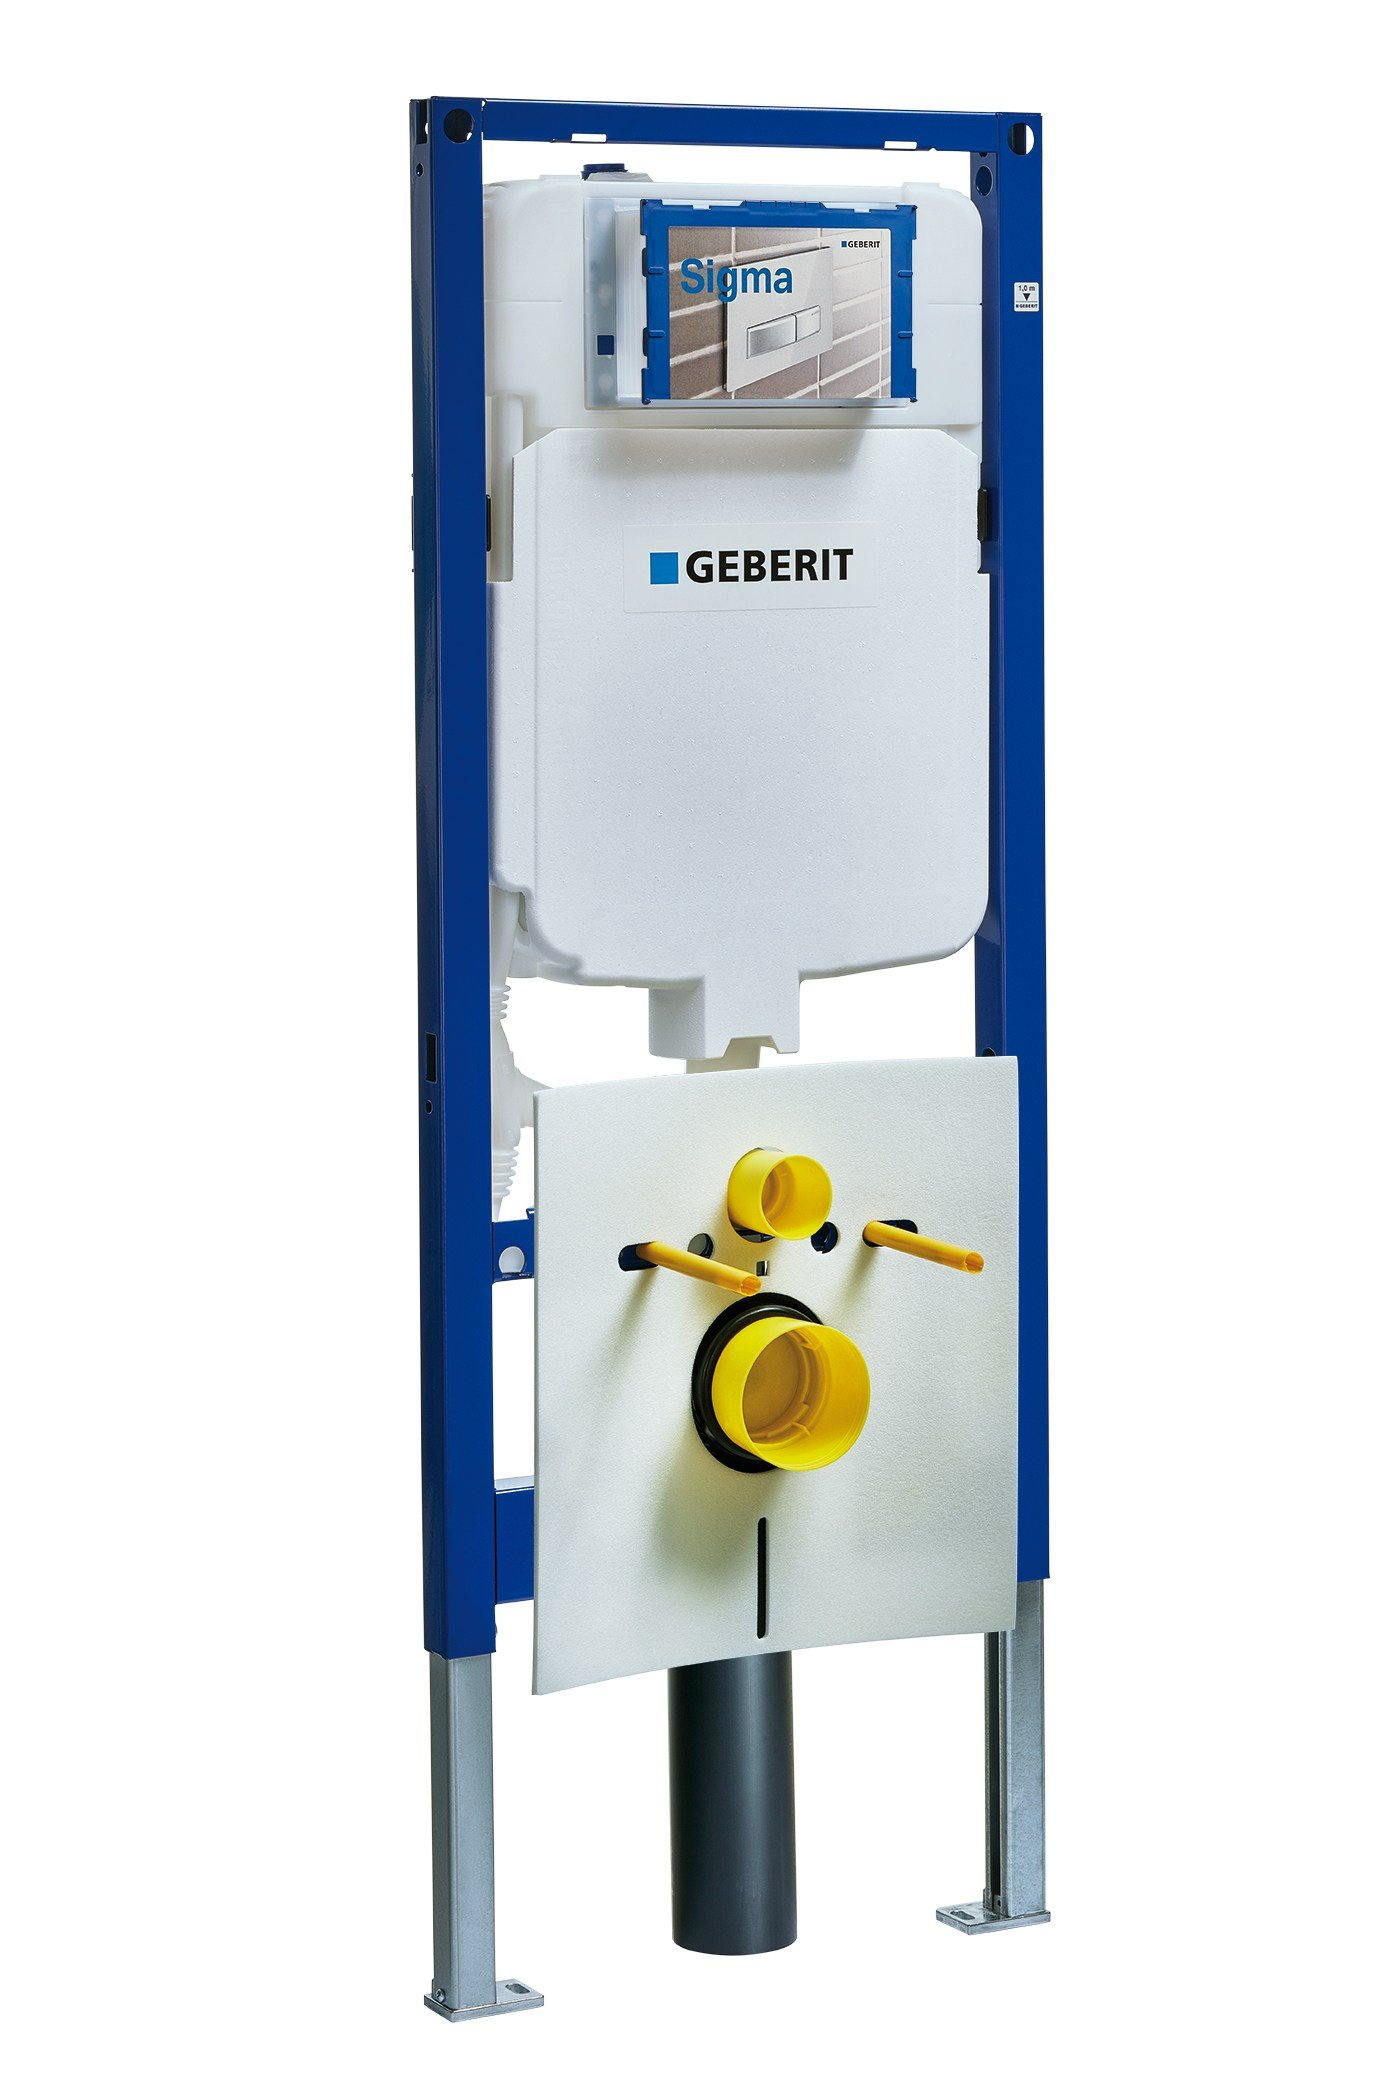 Concealed wc cistern duofix by geberit italia for Geberit toilet system